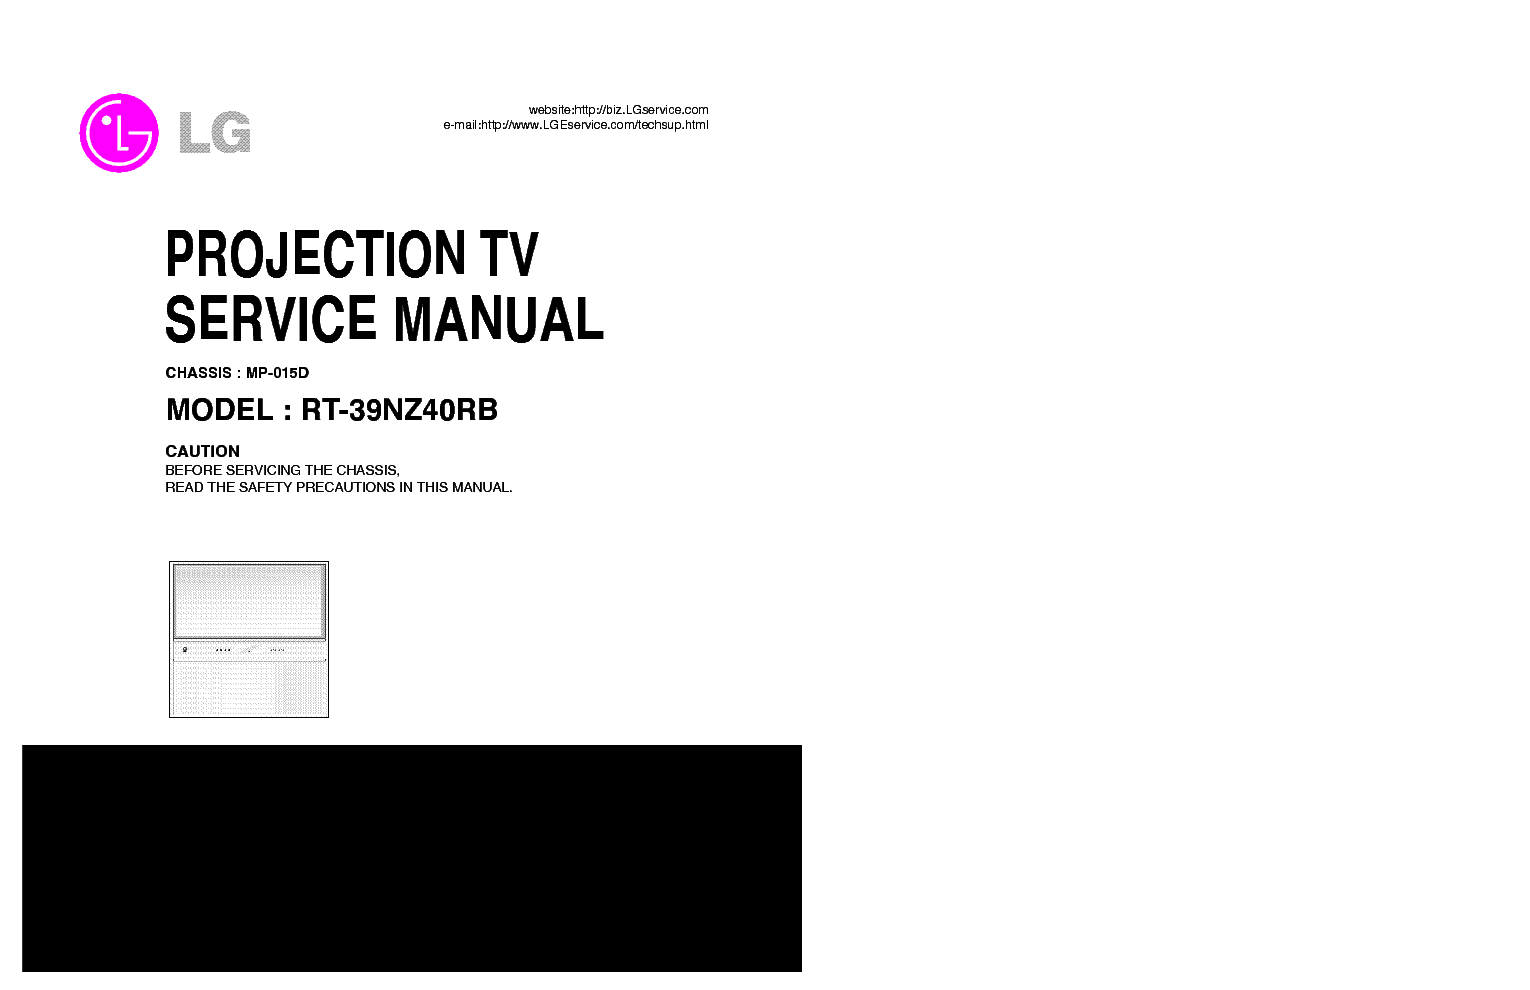 LG MP015D CHASSIS RT39NZ40RB PROJECTION Service Manual